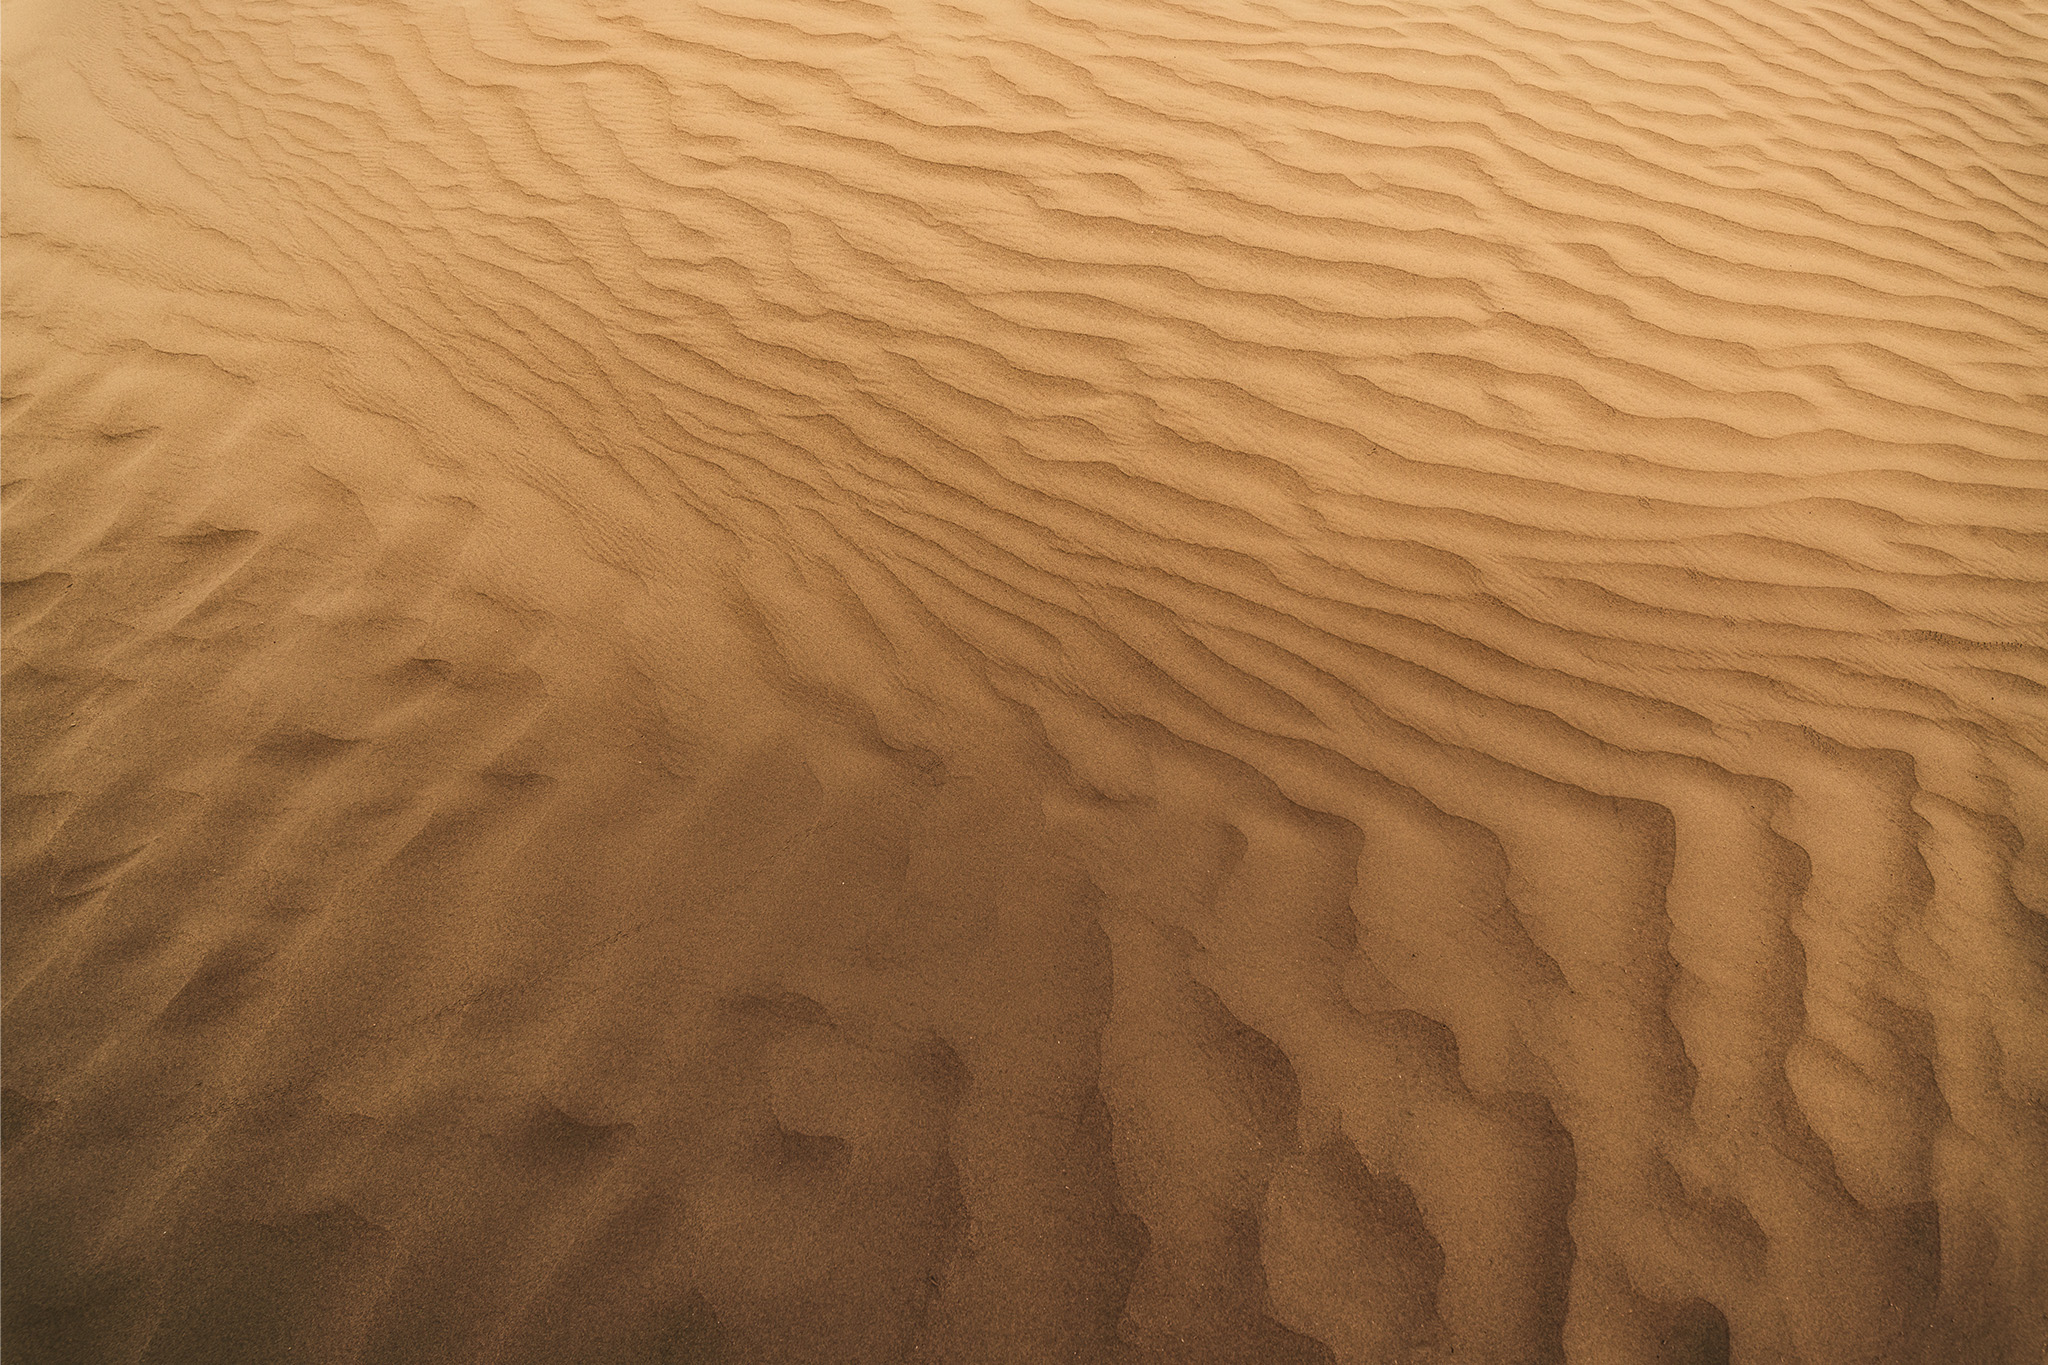 An abstract photograph of a sand dune in The Great Sandhills, Saskatchewan